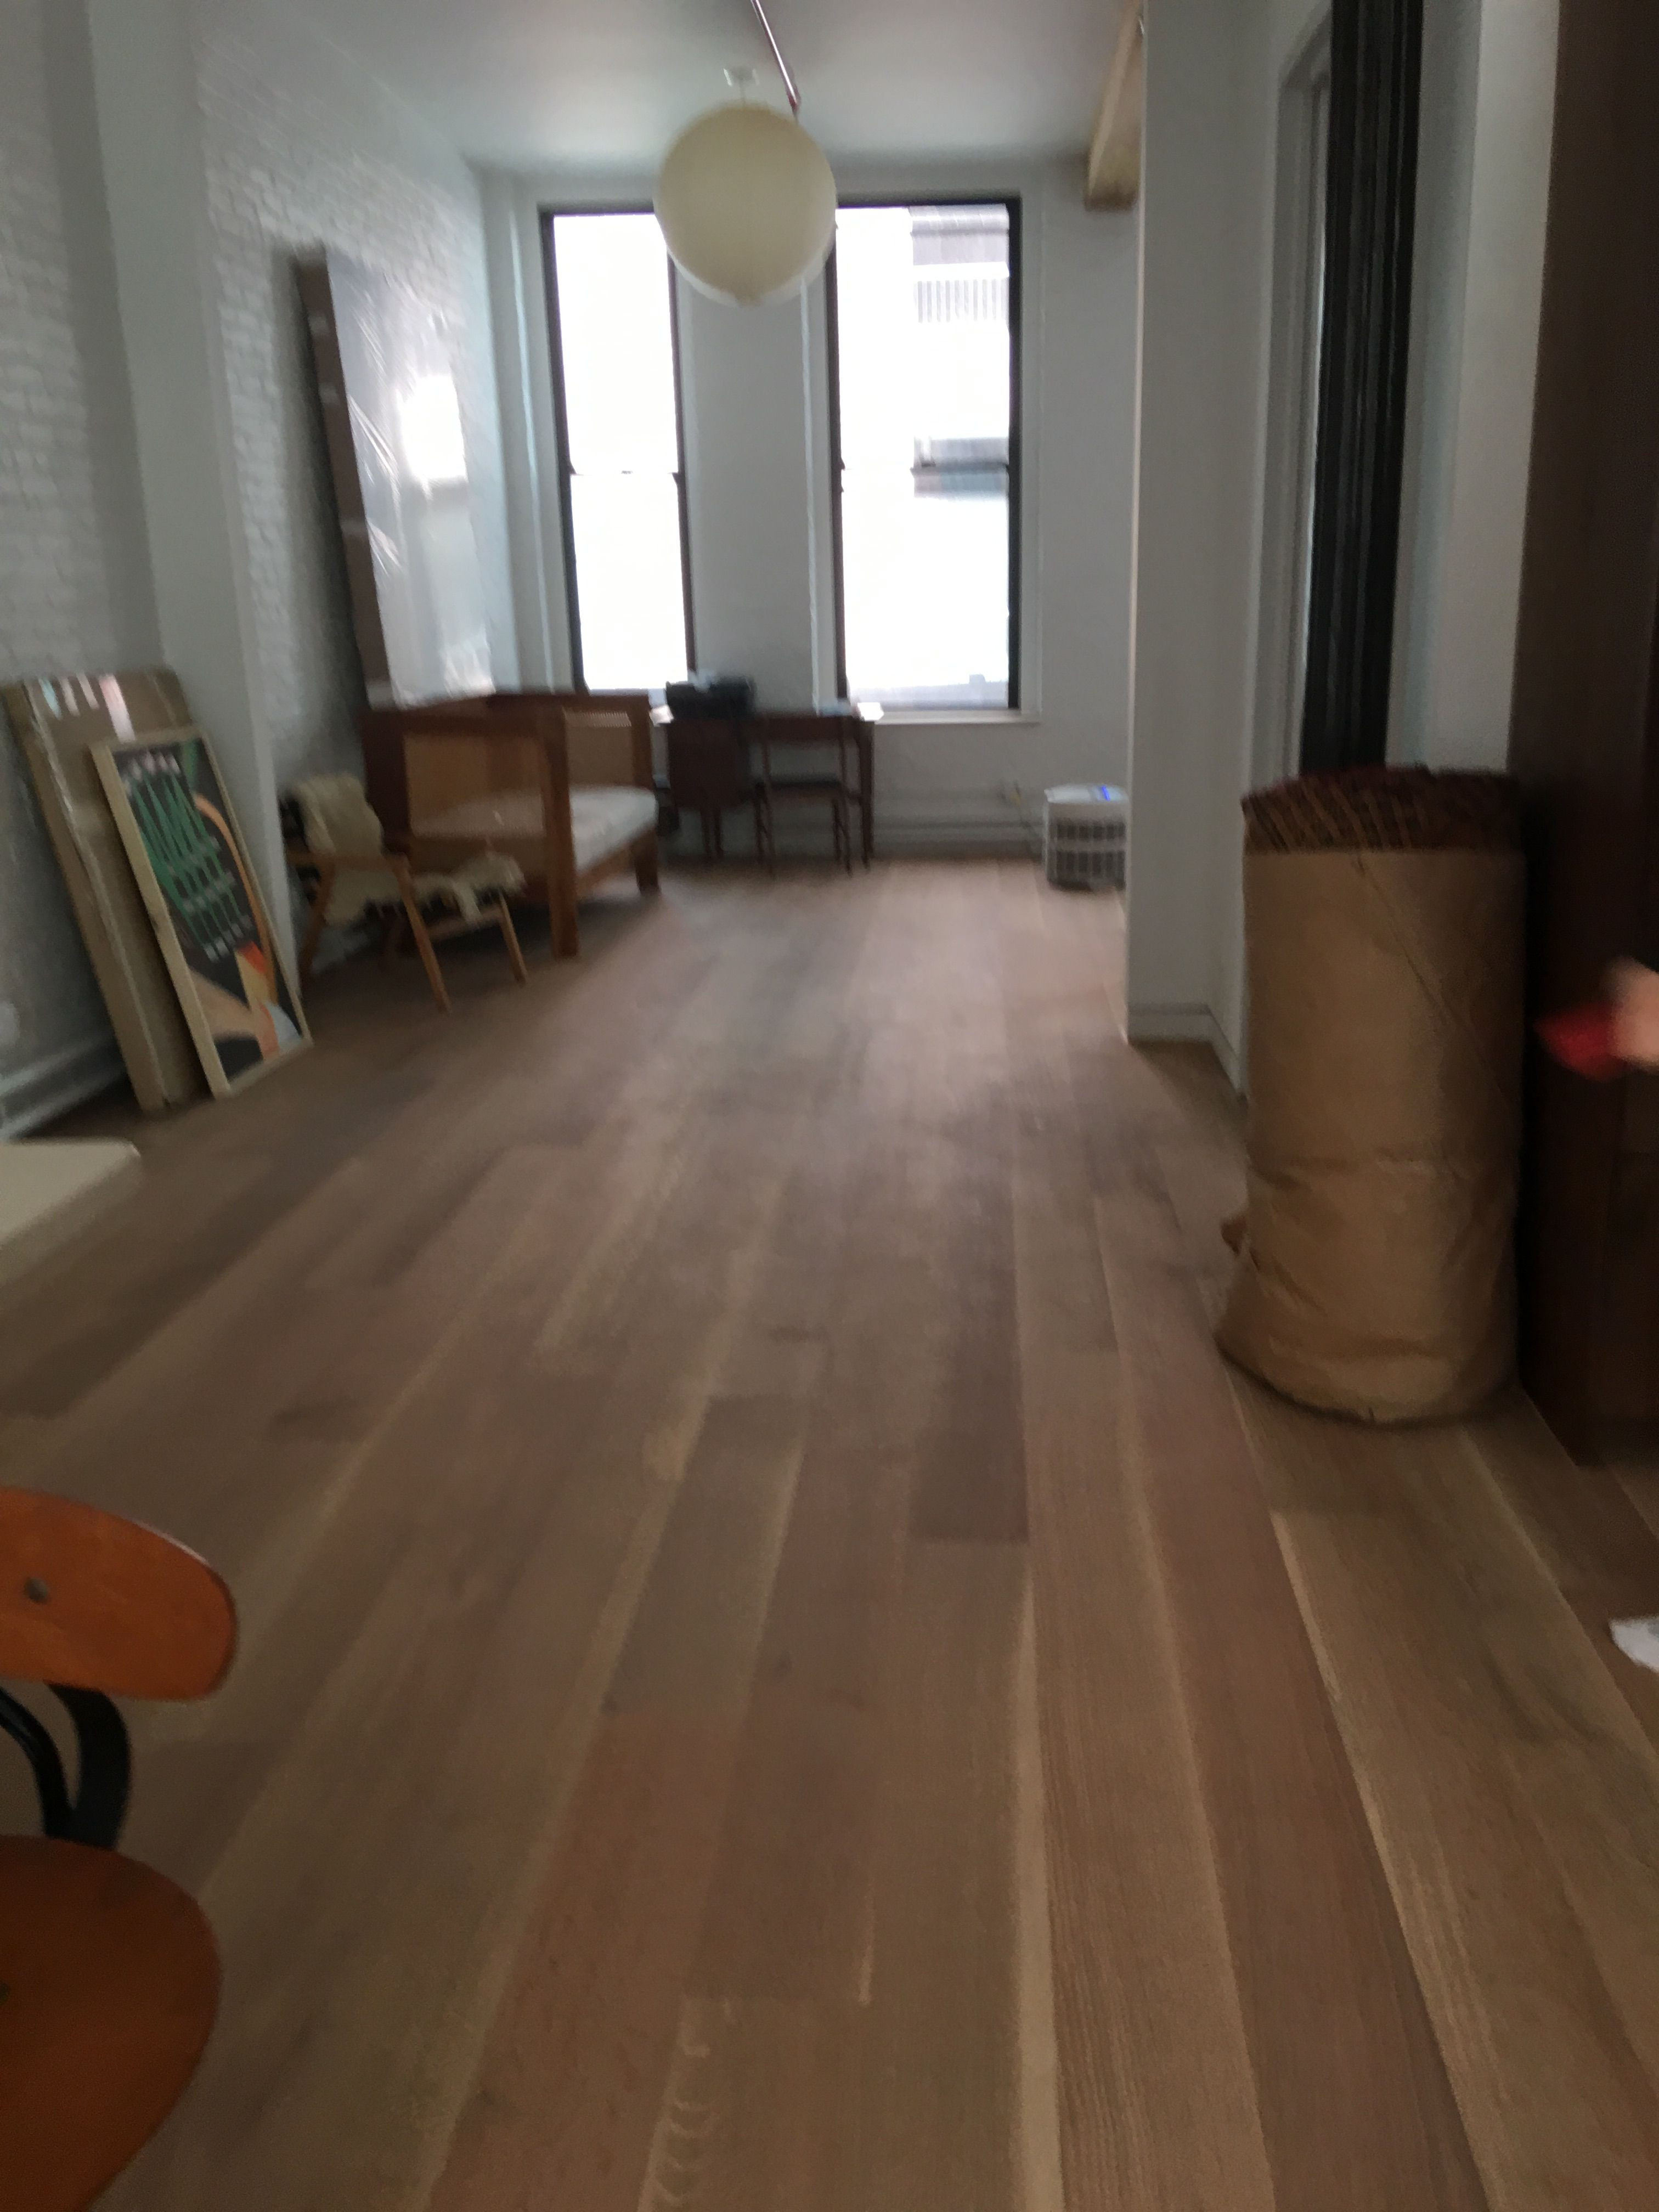 hardwood floor hardness of hardwood floors are not as expensive as they used to be and now intended for hardwood floors are not as expensive as they used to be and now come in competitively priced styles at huggins flooring we have the knowledge and